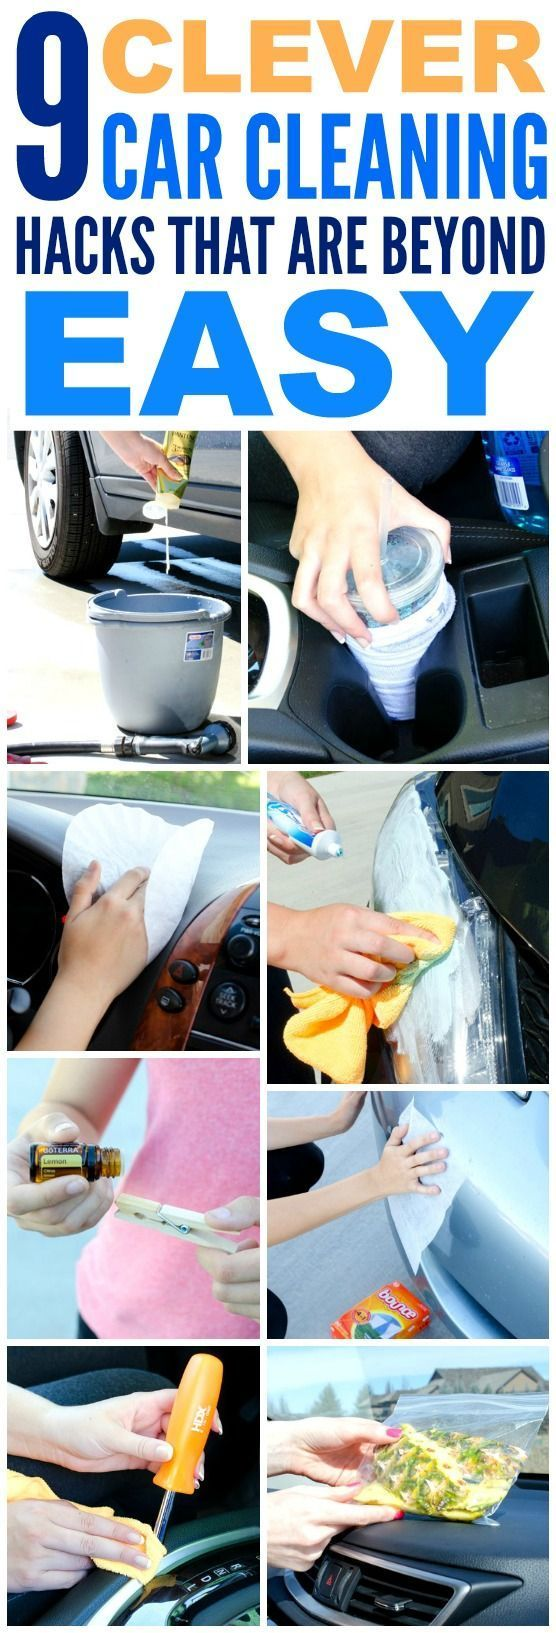 These 9 Clever hacks for cleaning and deep cleaning the car are THE BEST! I'm so glad I found these GREAT tips! Now I have great car hacks and tips when wanting to make it look like new again! Definitely pinning!